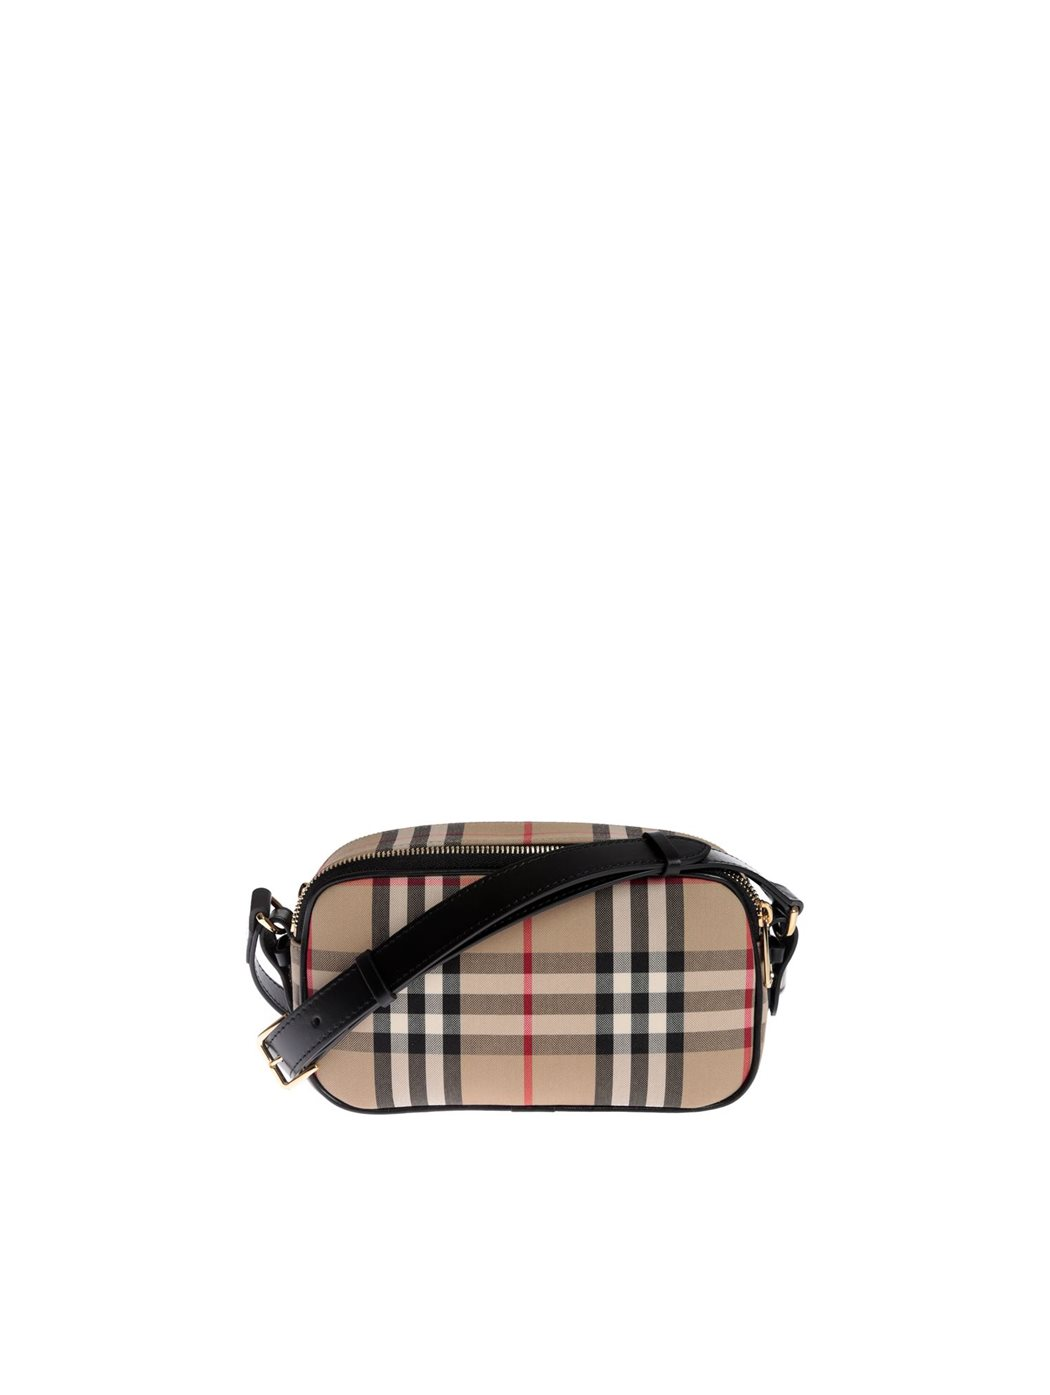 BURBERRY DONNA 8022345 Archive-be MINI BORSE